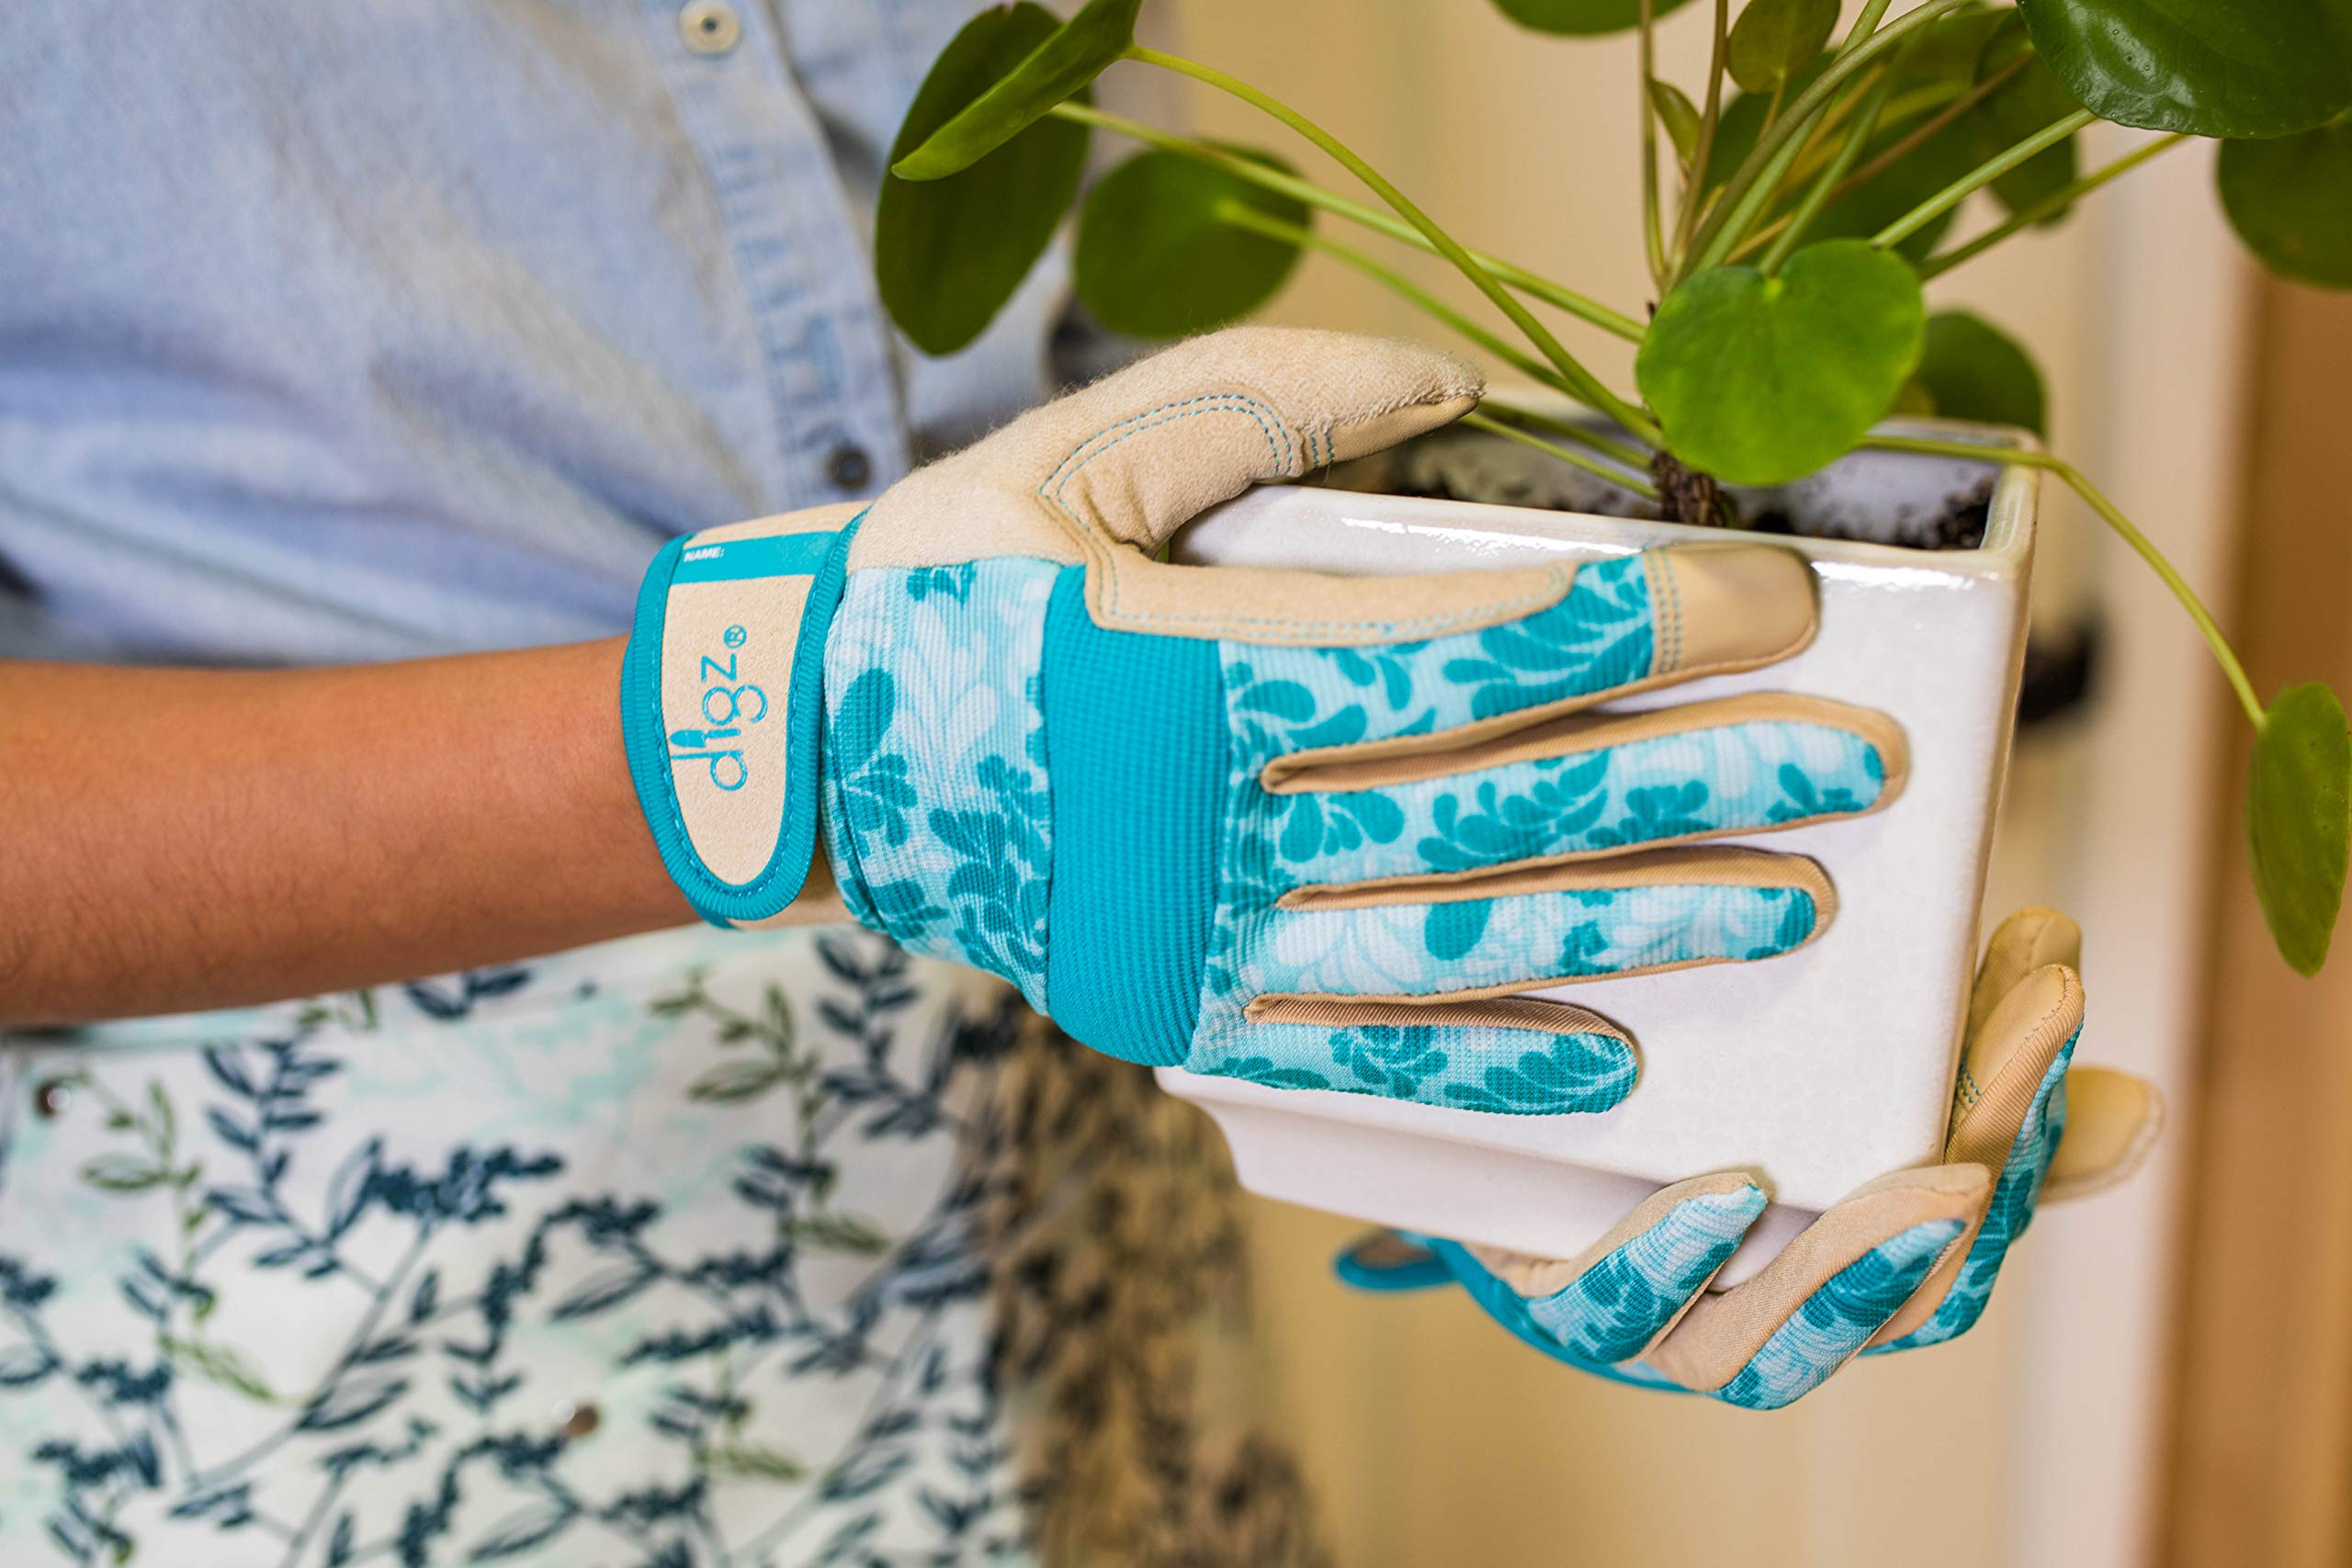 DIGZ Gardener High Performance Women's Gardening Gloves and Work Gloves with Touch Screen Compatible fingertips by DIGZ (Image #4)